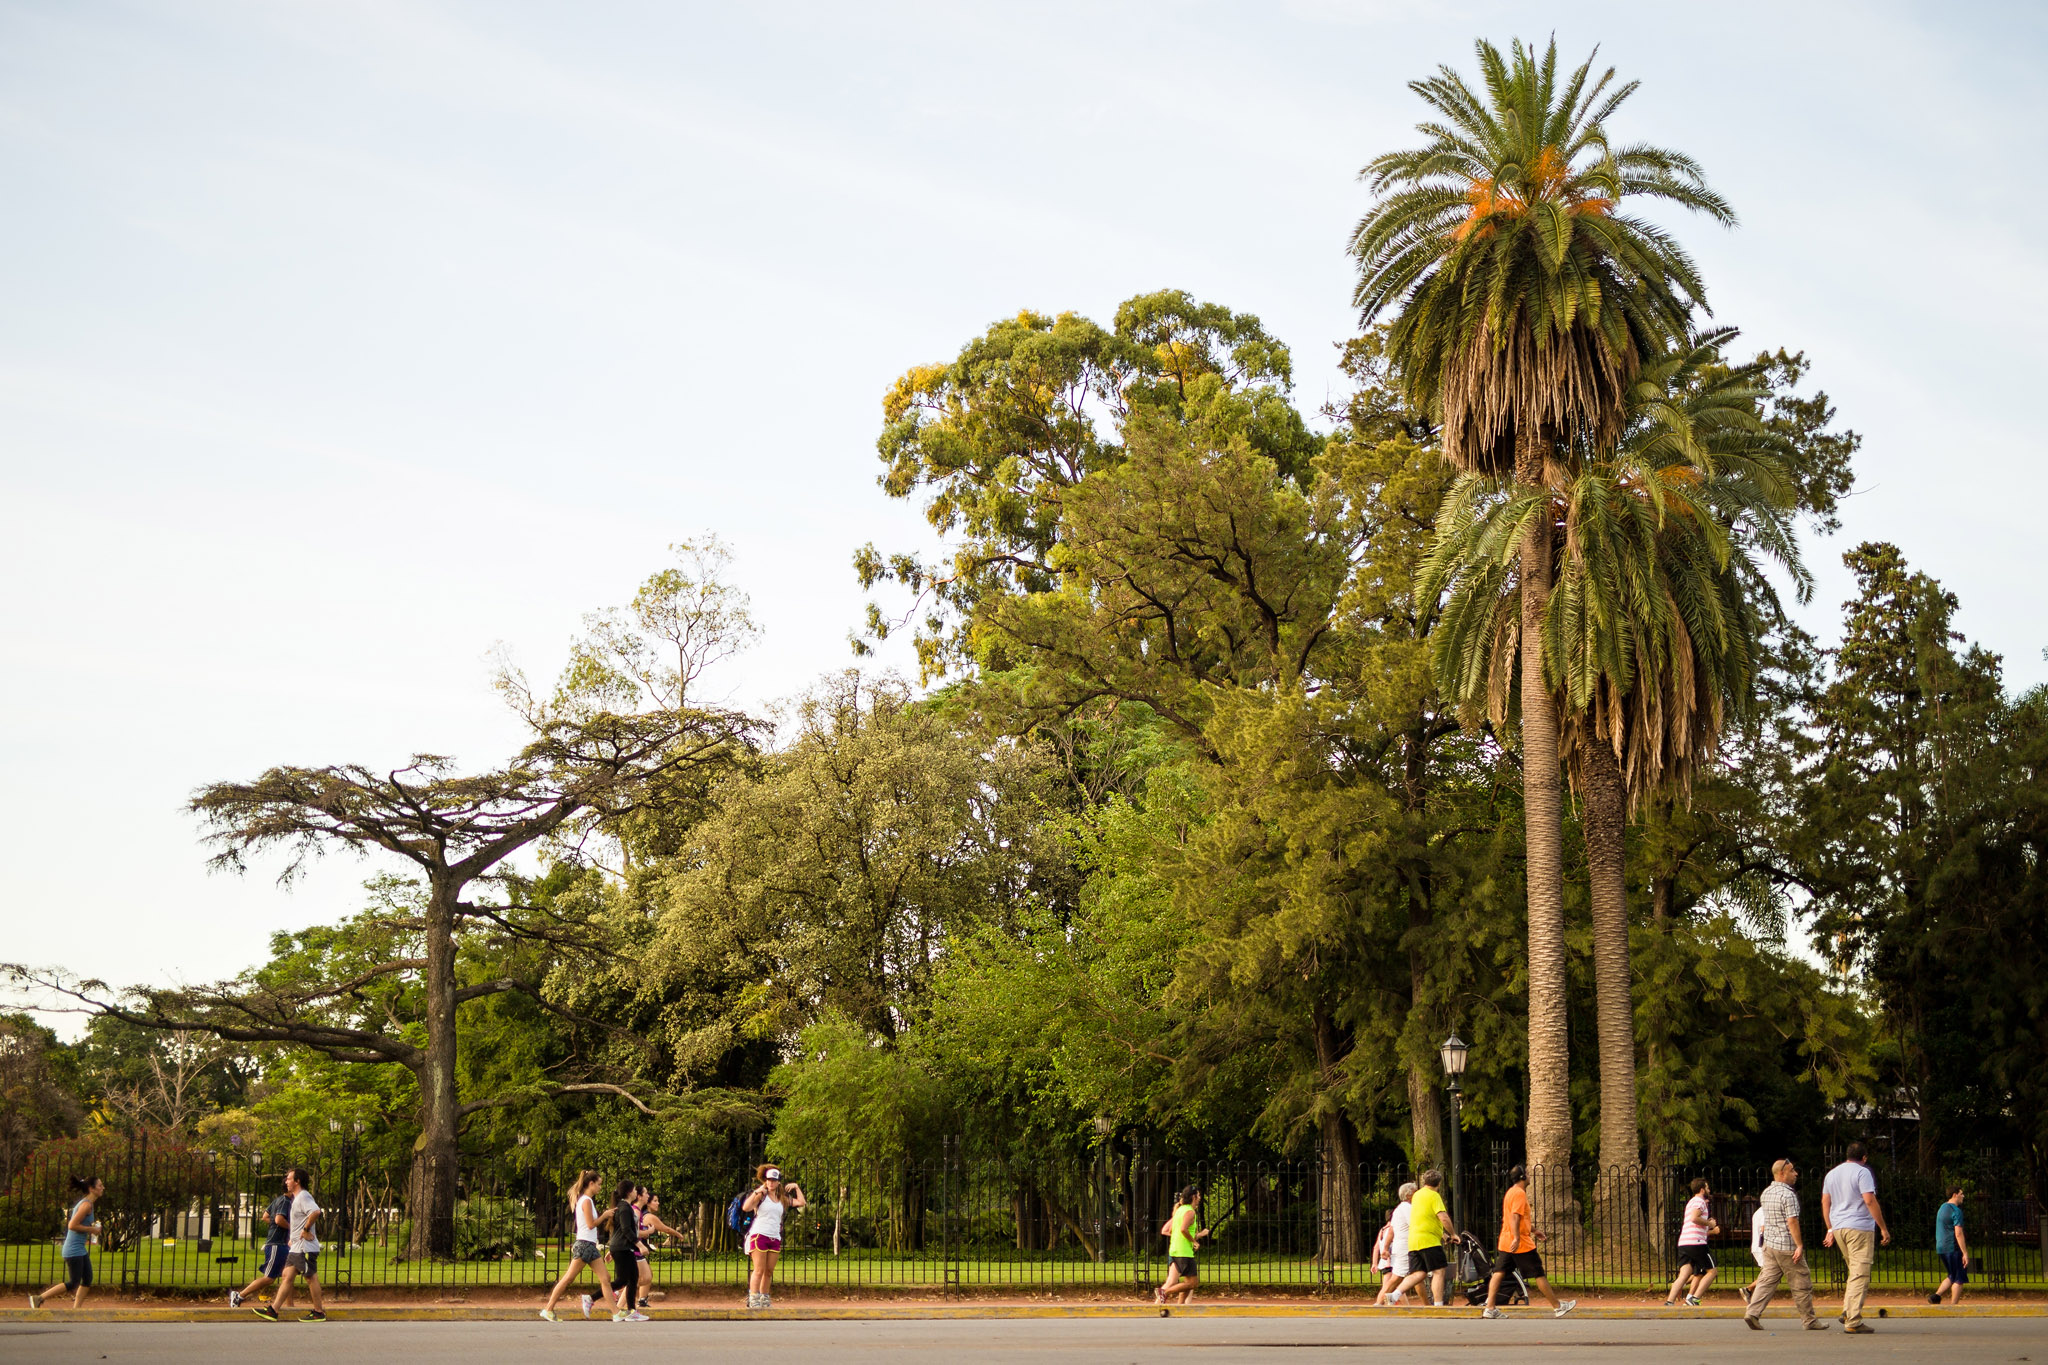 Wedding-Travellers-Argentina-Buenos-Aires-Park